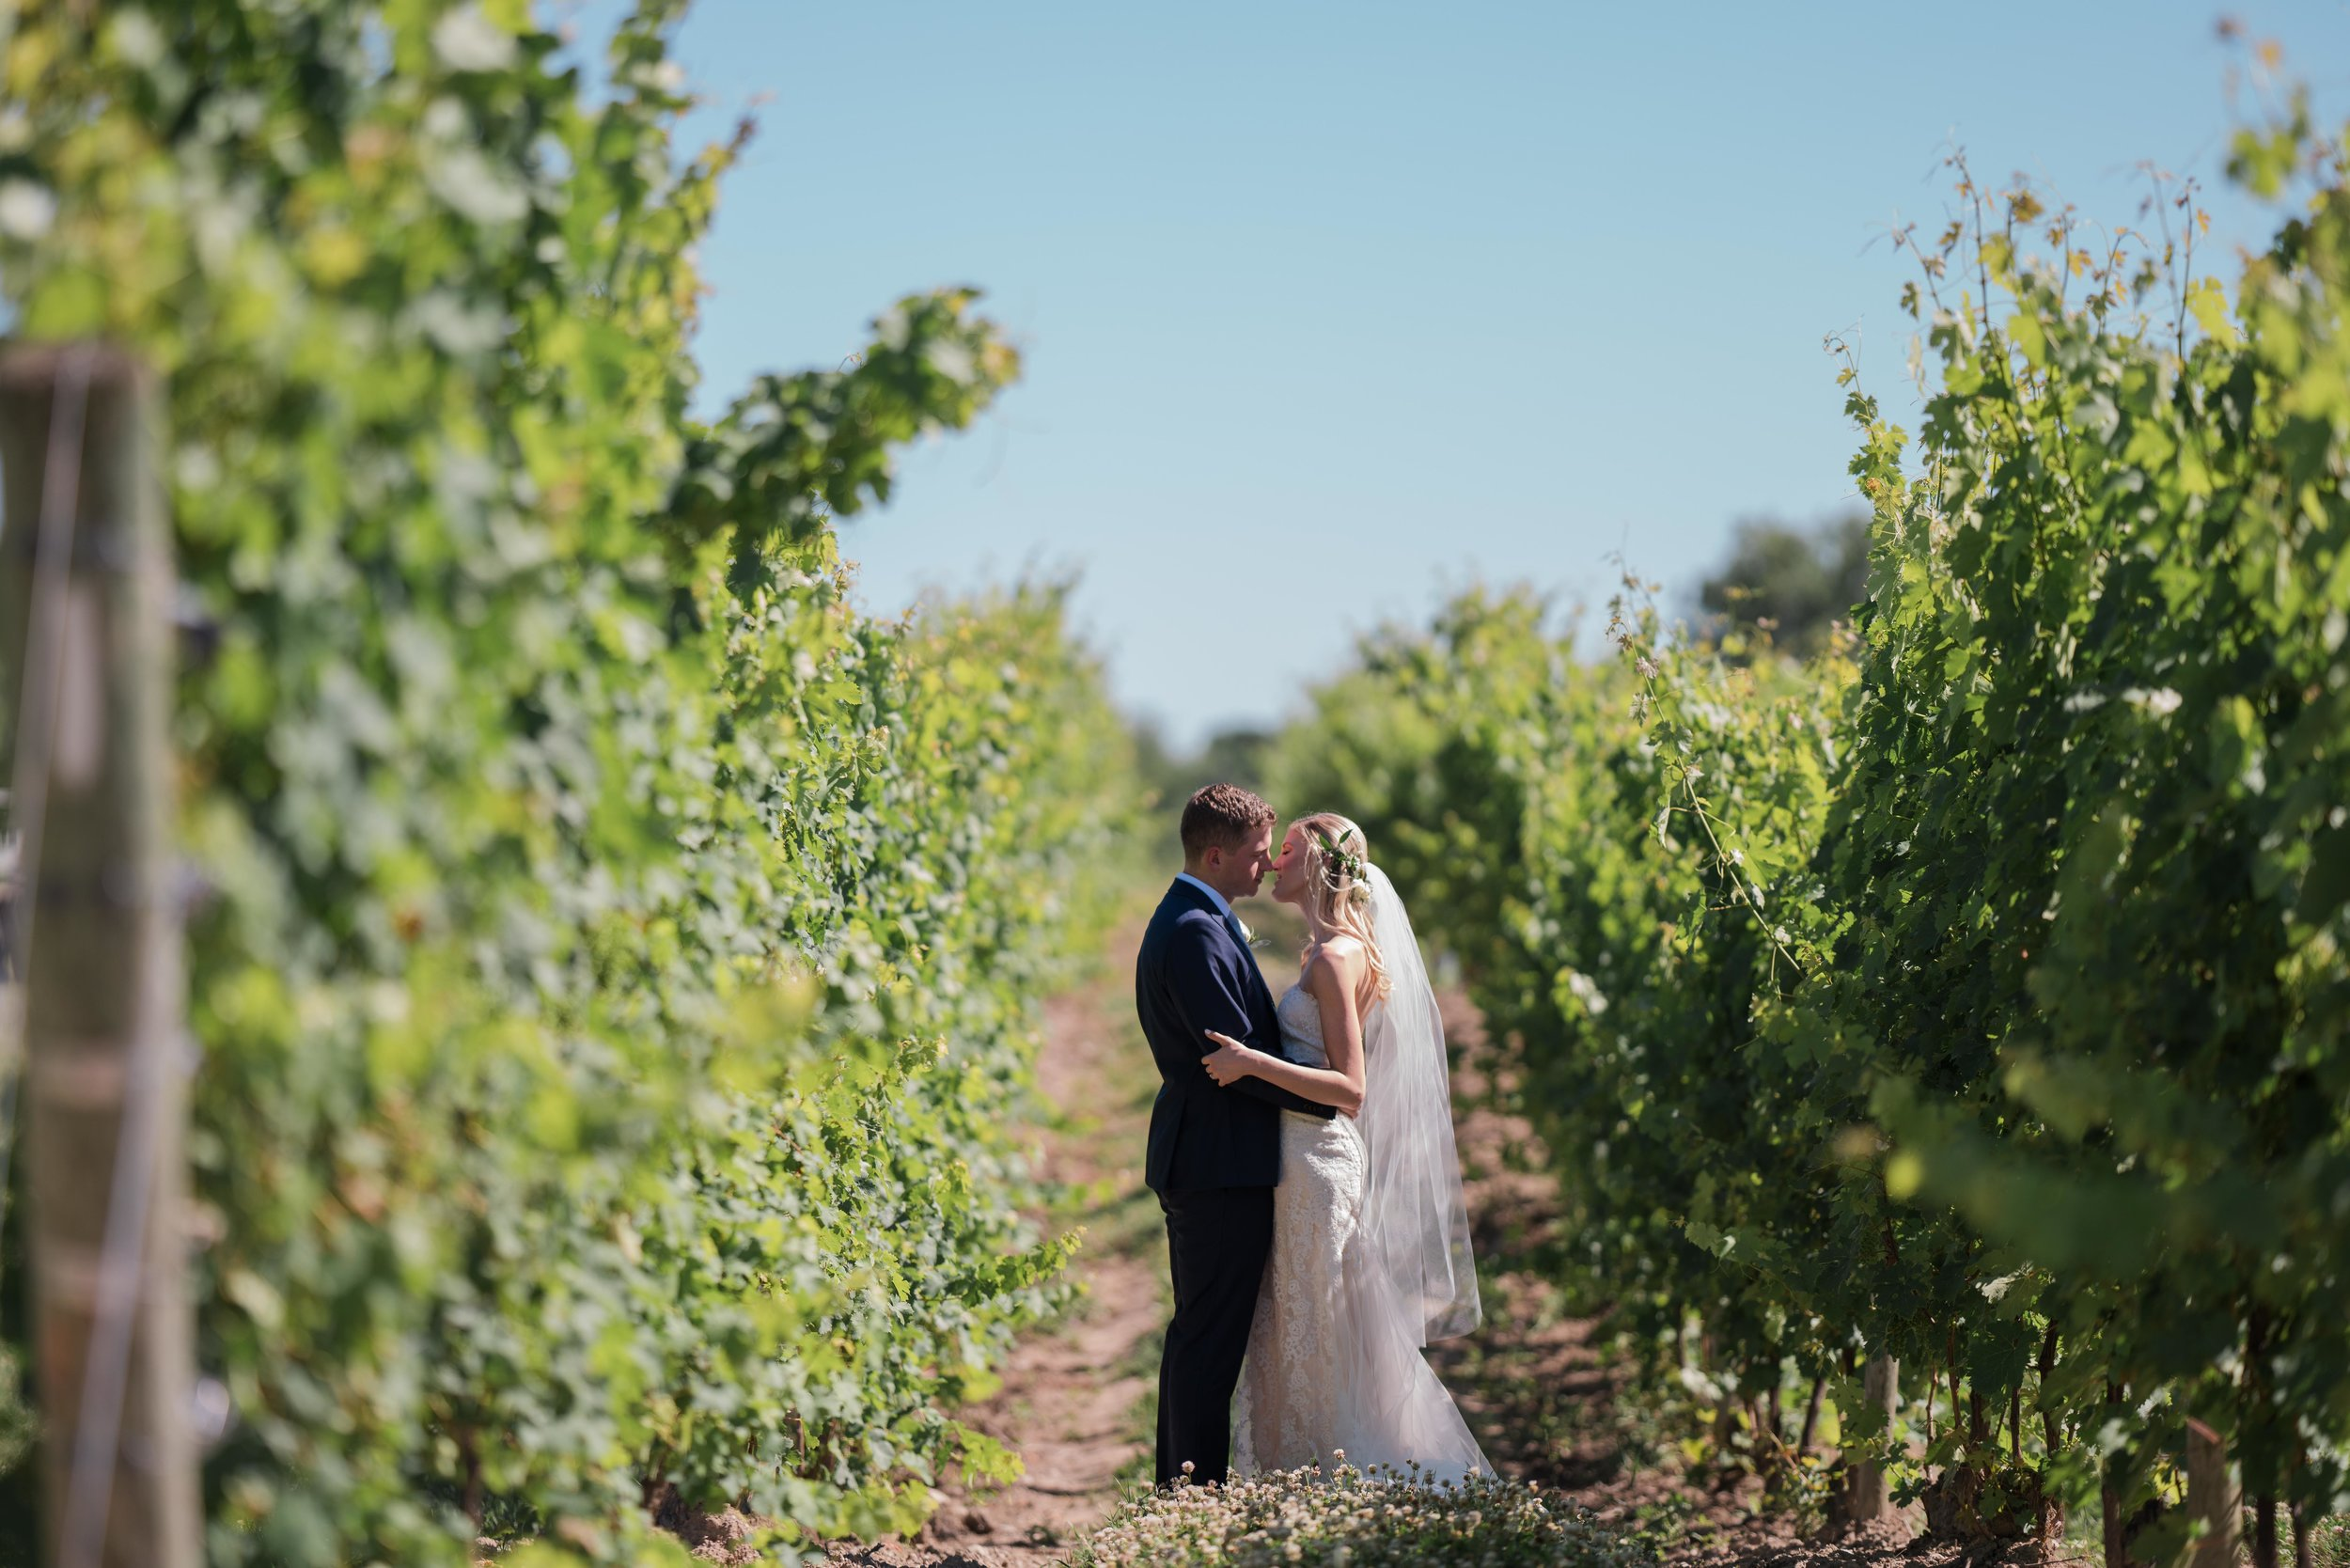 Wedding Photography at Wagner Vineyards Ginny Lee Cafe Finger Lakes by Stefan Ludwig Photography-43.jpg